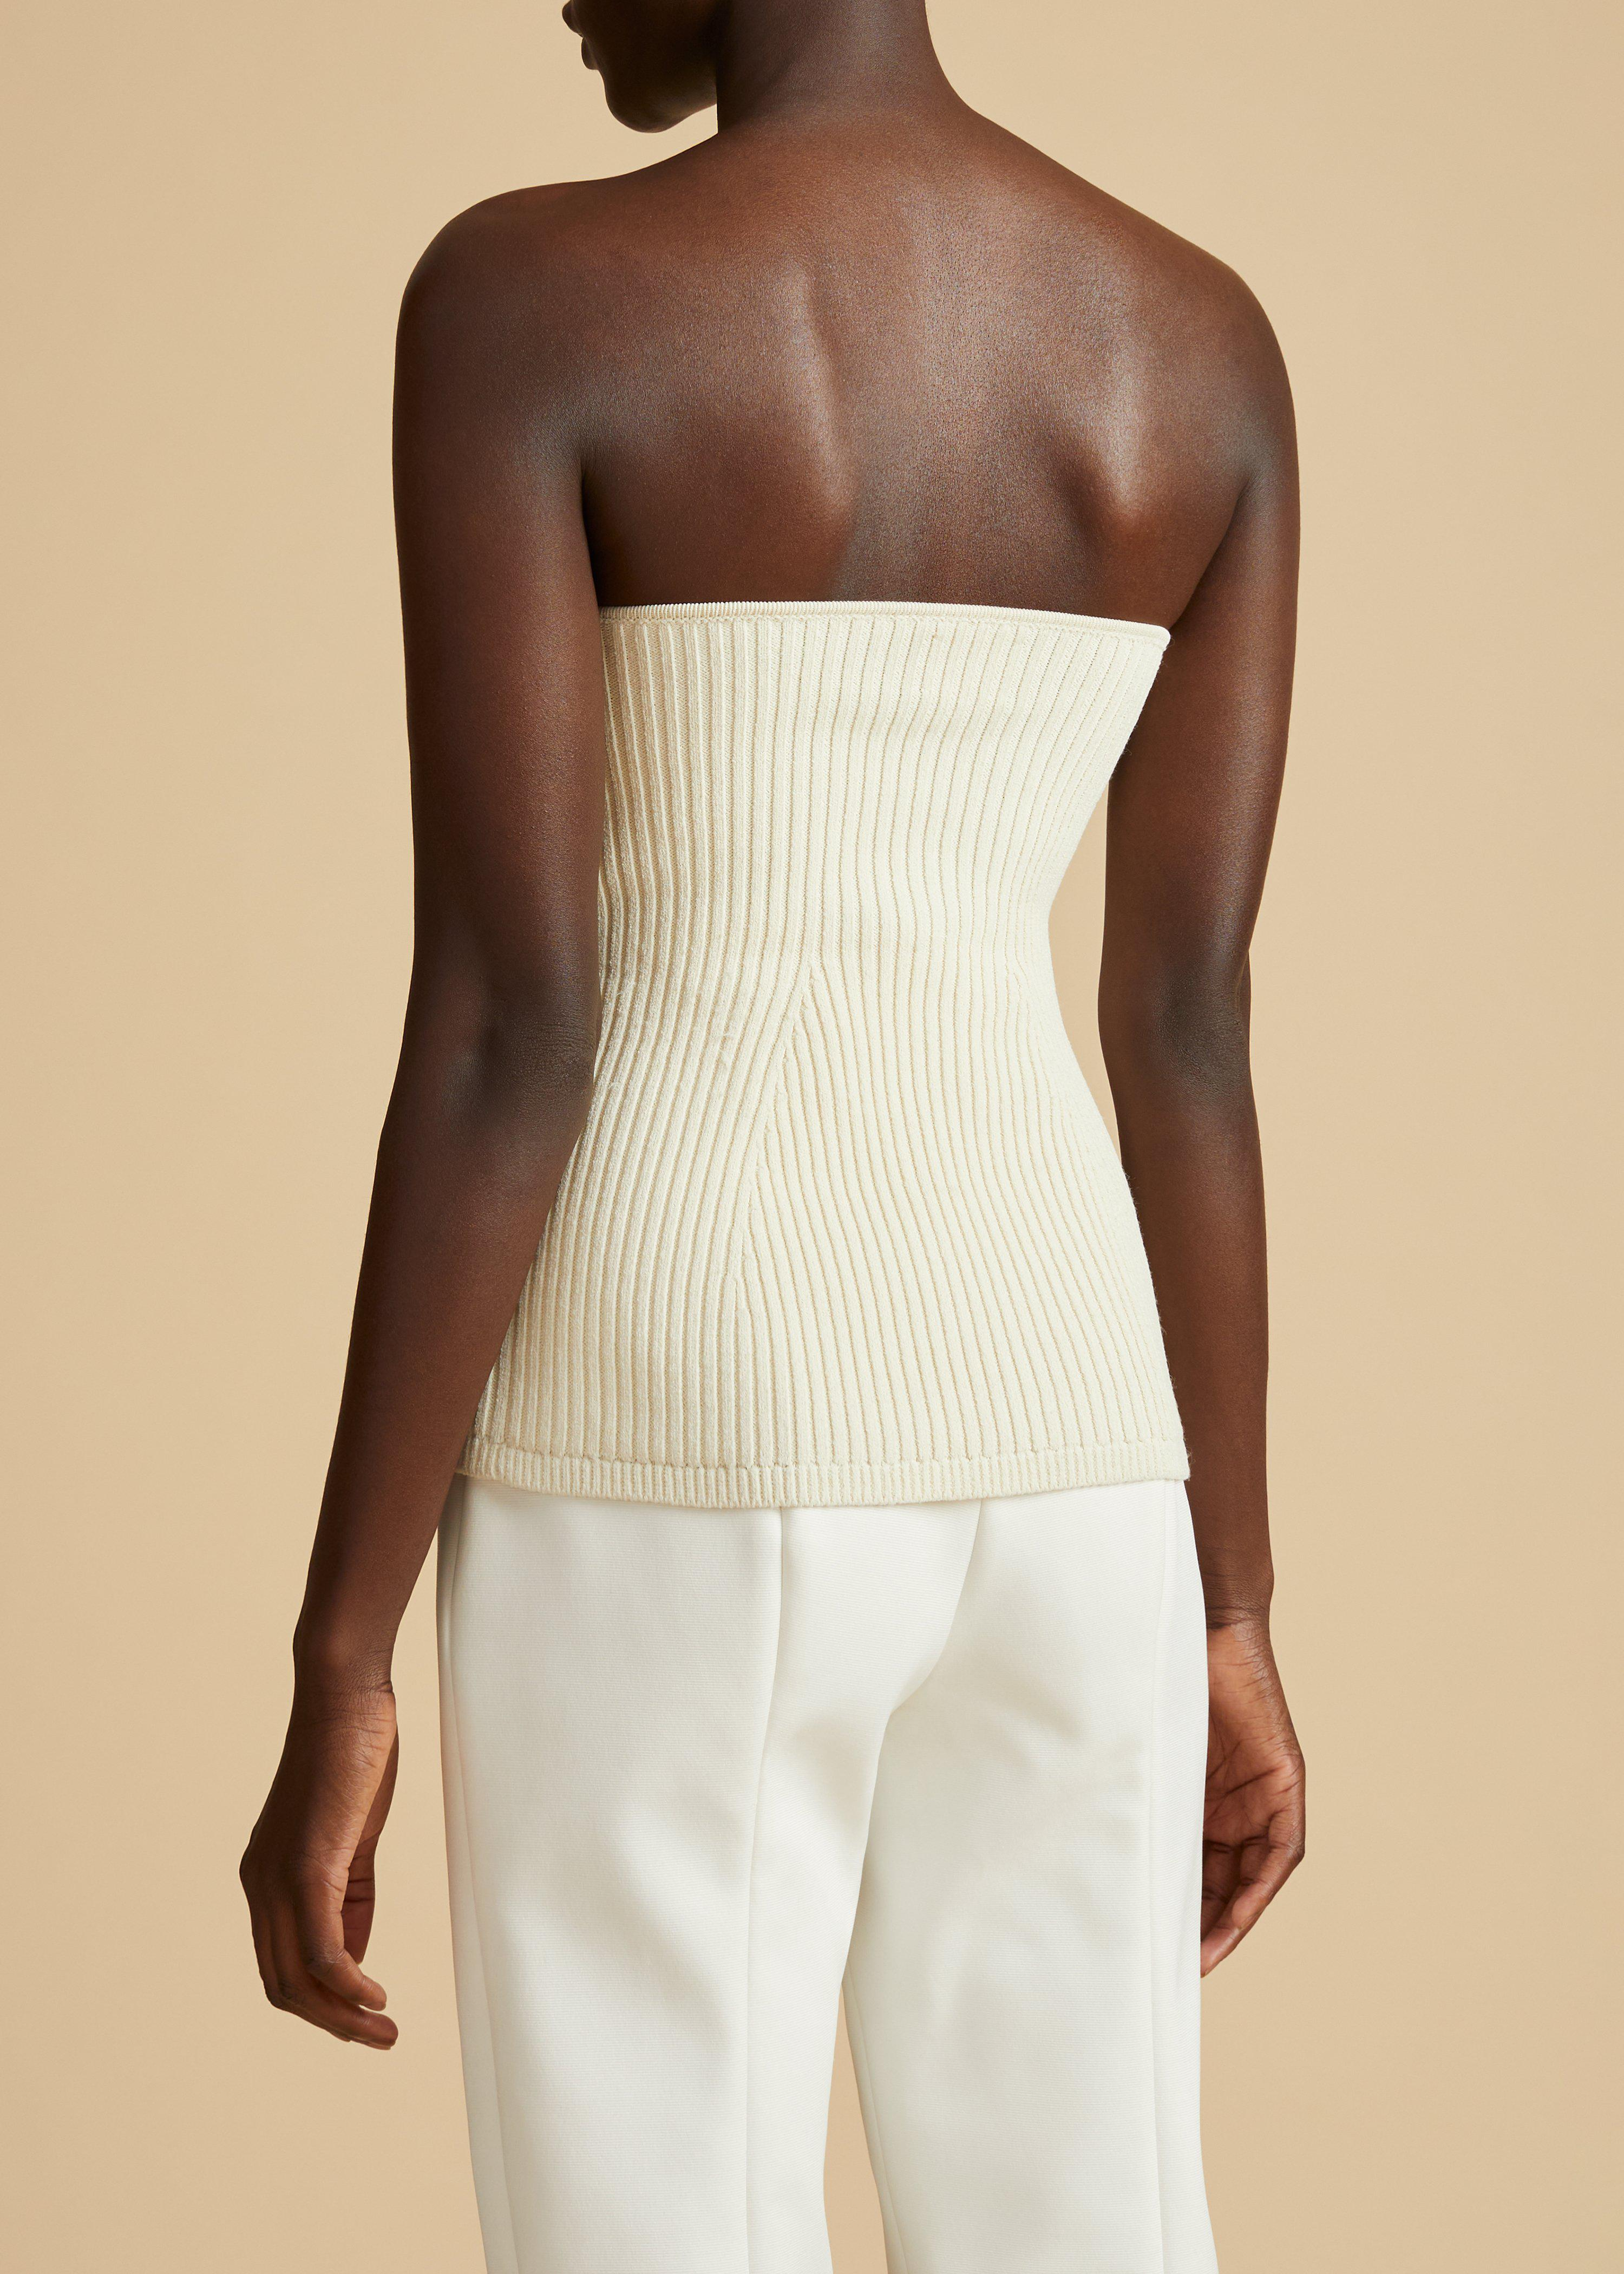 The Lucie Top in Cream 2